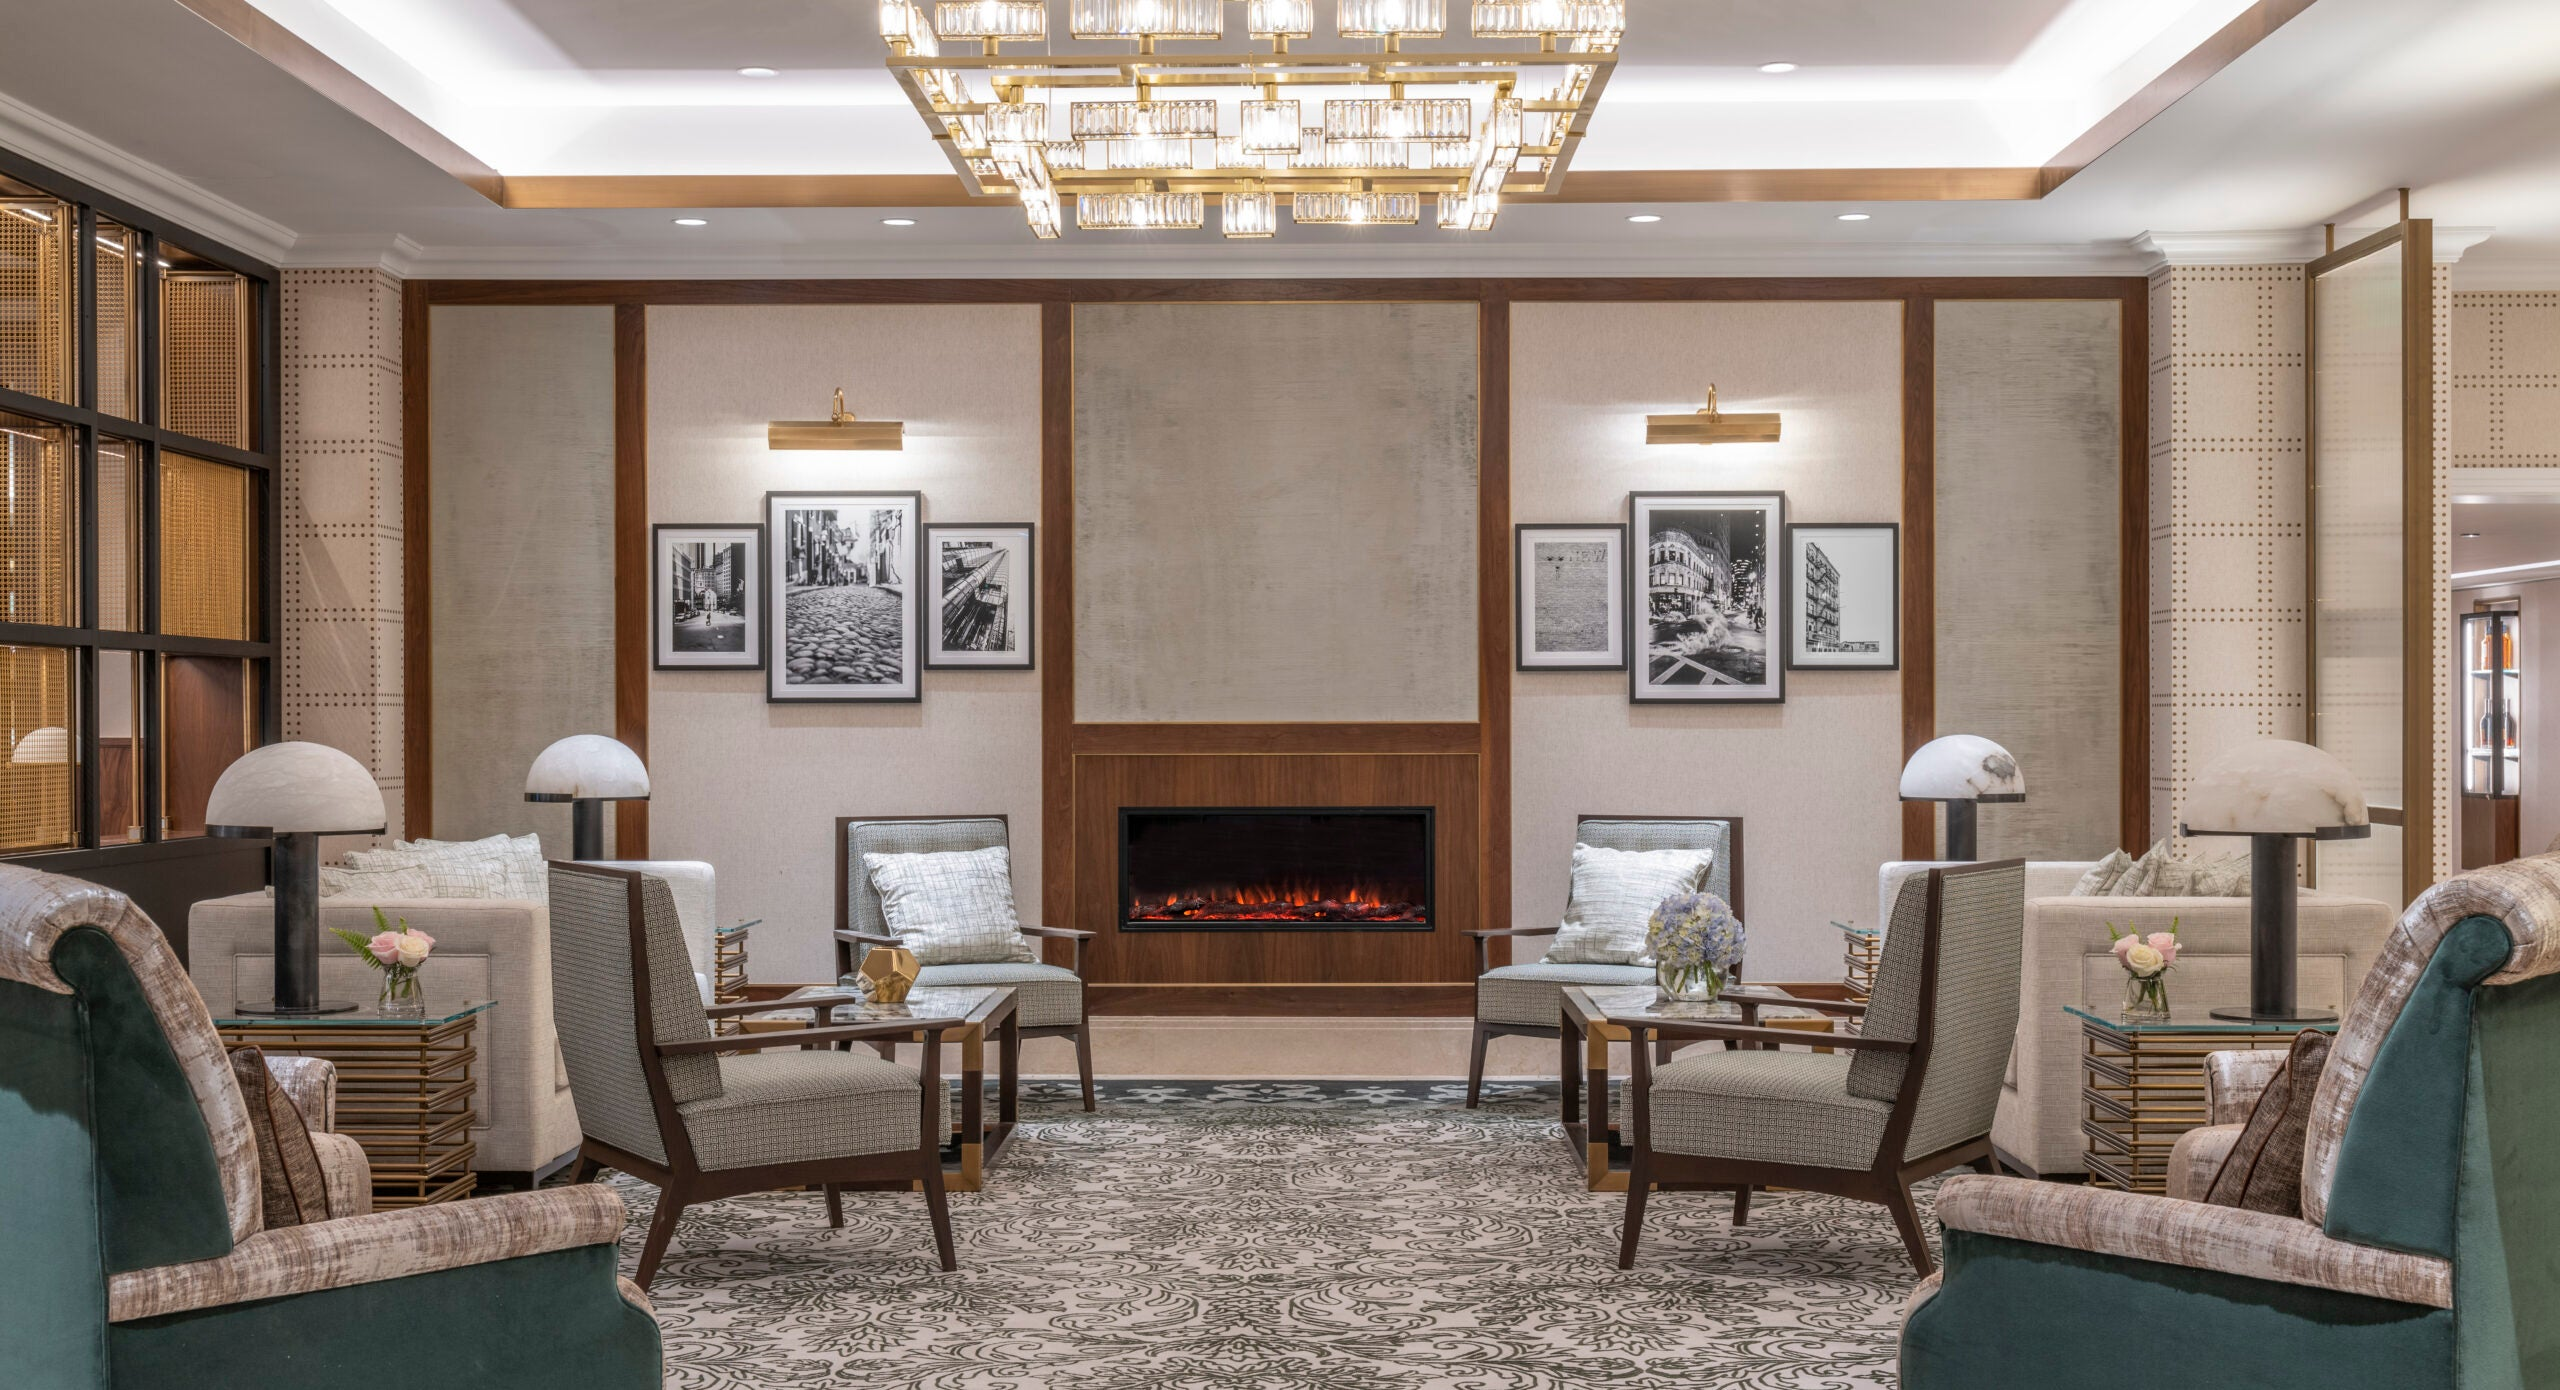 Take a peek inside The Langham, which has reopened after a massive makeover 3